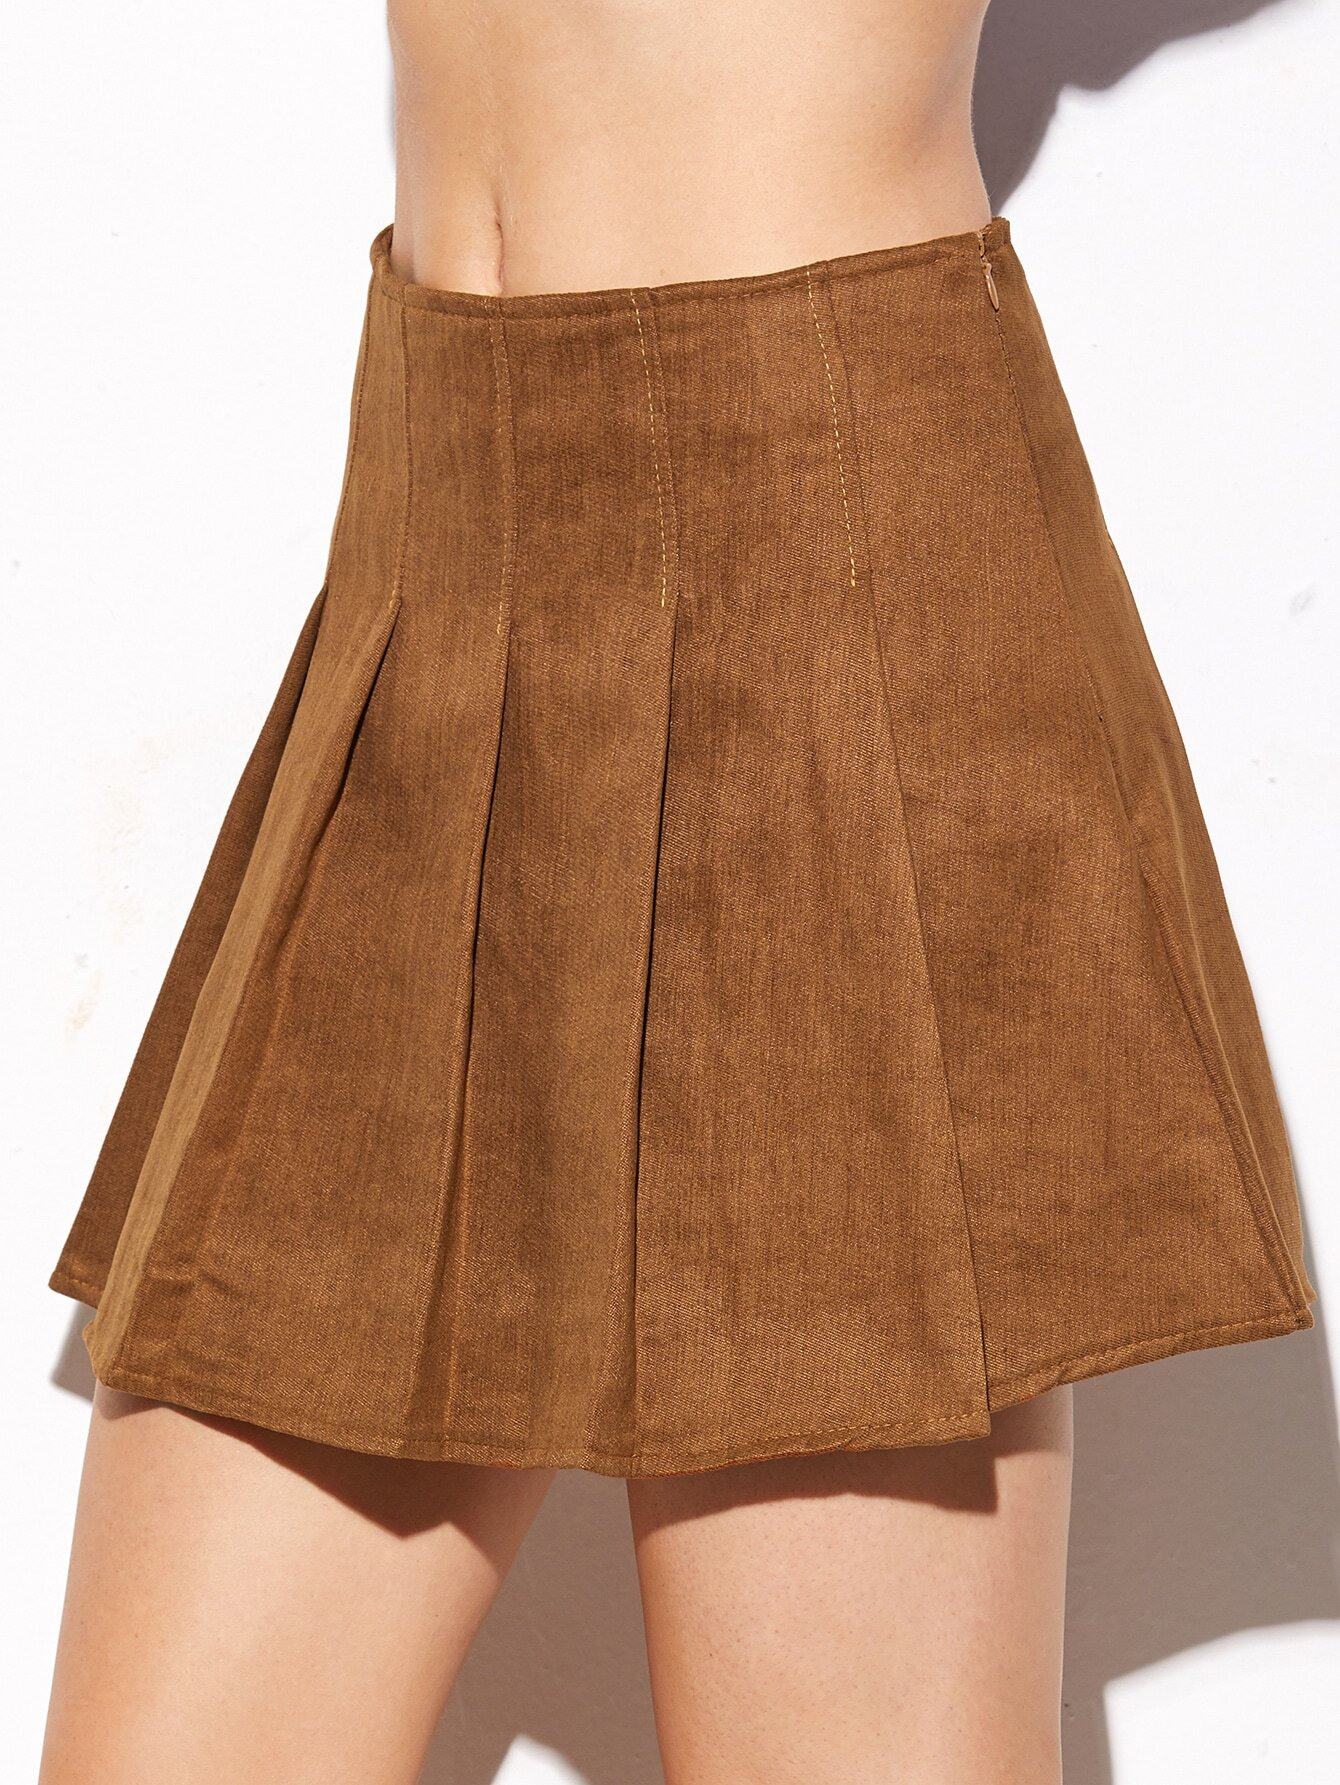 Camel Suede Pleated Zipper SkirtCamel Suede Pleated Zipper Skirt<br><br>color: Camel<br>size: M,S